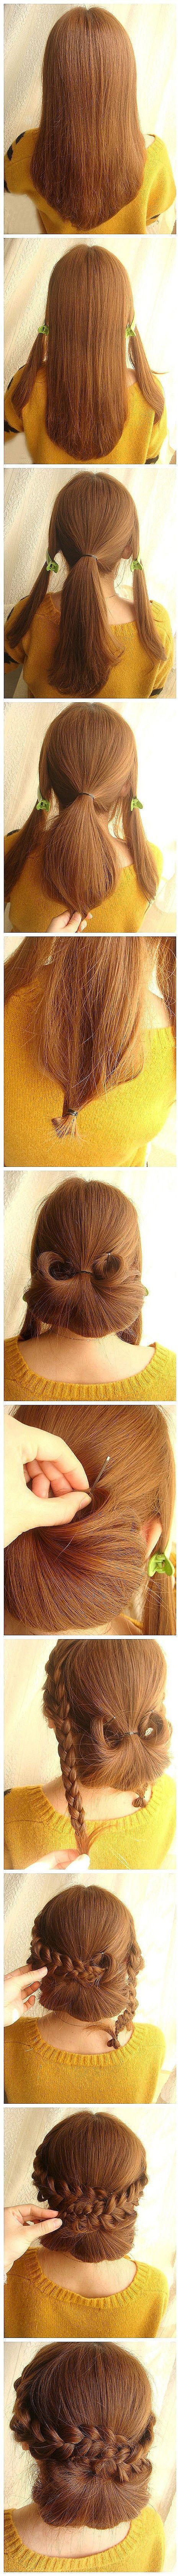 This looks like something I actually could do myself, if I ever let my hair get long enough.